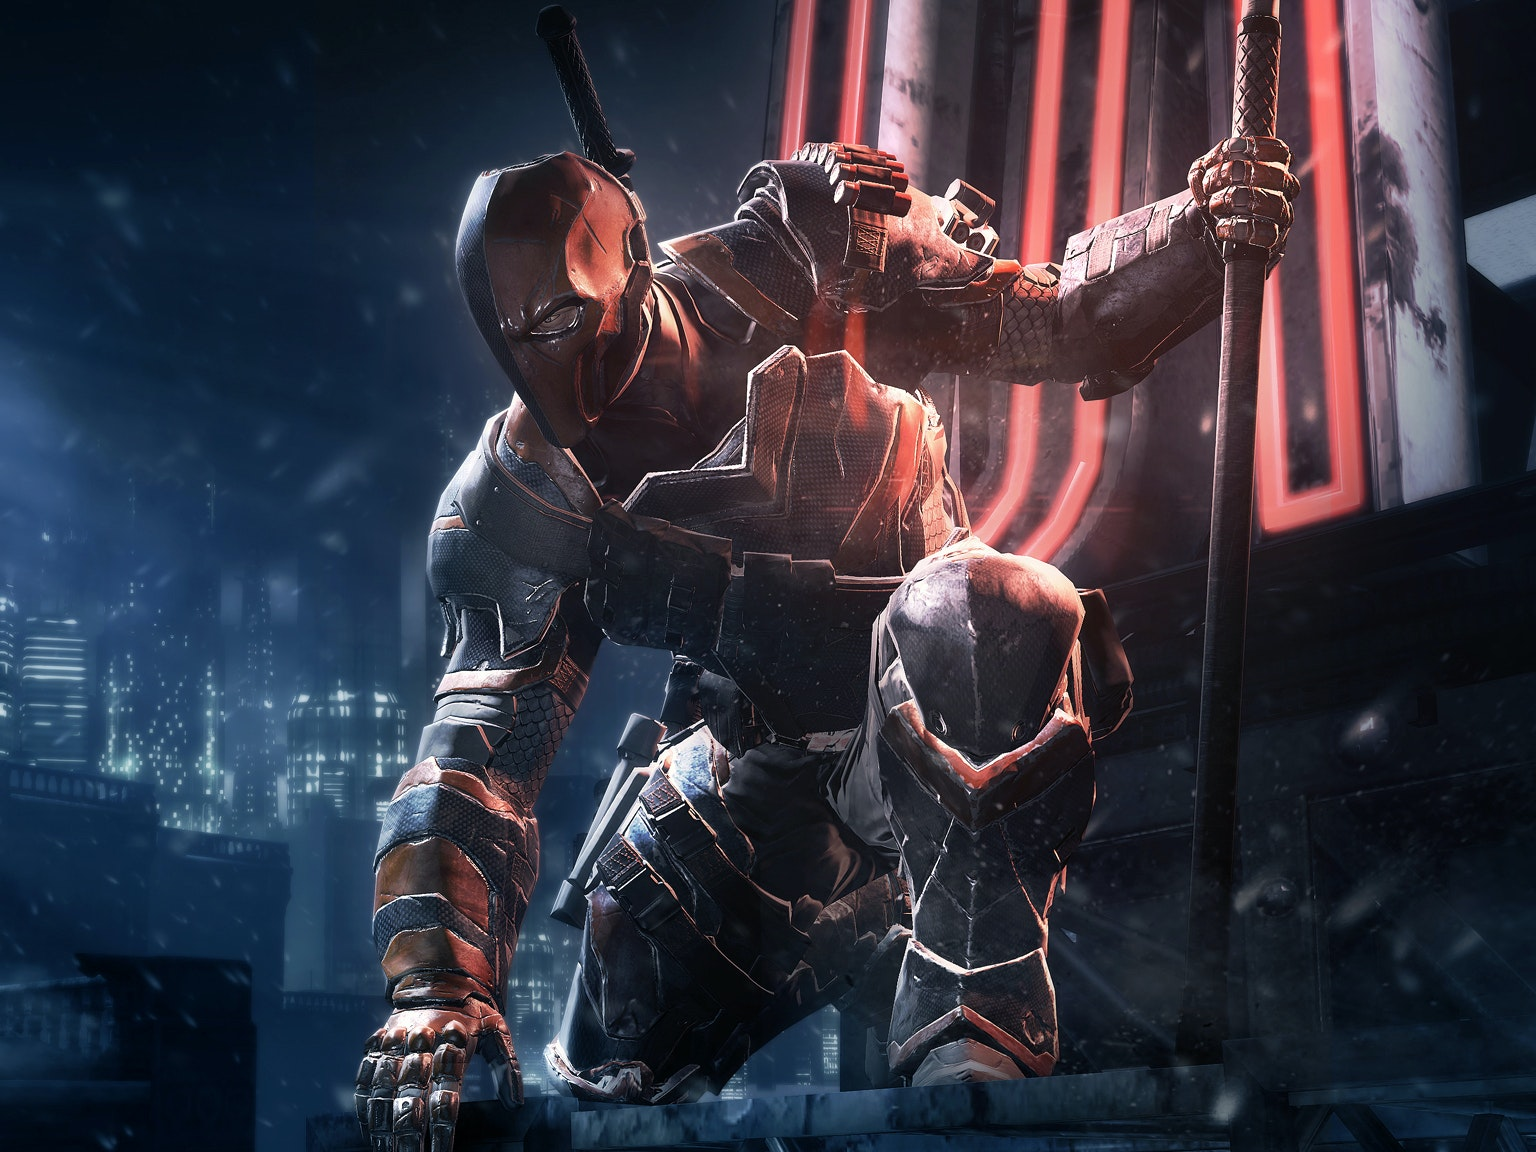 Deathstroke is Going to Kick Ben Affleck's Batman Ass